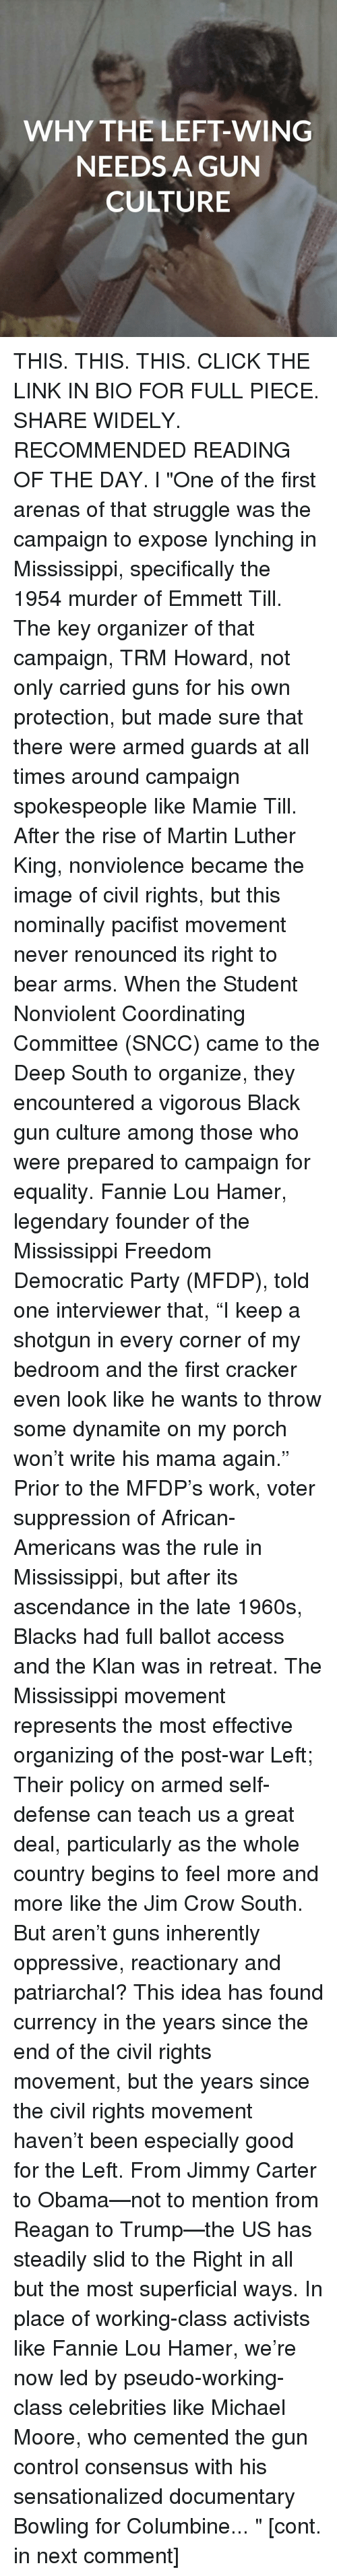 "Fannie Lou Hamer: WHY THE LEFT-WING  NEEDS A GUN  CULTURE THIS. THIS. THIS. CLICK THE LINK IN BIO FOR FULL PIECE. SHARE WIDELY. RECOMMENDED READING OF THE DAY. l ""One of the first arenas of that struggle was the campaign to expose lynching in Mississippi, specifically the 1954 murder of Emmett Till. The key organizer of that campaign, TRM Howard, not only carried guns for his own protection, but made sure that there were armed guards at all times around campaign spokespeople like Mamie Till. After the rise of Martin Luther King, nonviolence became the image of civil rights, but this nominally pacifist movement never renounced its right to bear arms. When the Student Nonviolent Coordinating Committee (SNCC) came to the Deep South to organize, they encountered a vigorous Black gun culture among those who were prepared to campaign for equality. Fannie Lou Hamer, legendary founder of the Mississippi Freedom Democratic Party (MFDP), told one interviewer that, ""I keep a shotgun in every corner of my bedroom and the first cracker even look like he wants to throw some dynamite on my porch won't write his mama again."" Prior to the MFDP's work, voter suppression of African-Americans was the rule in Mississippi, but after its ascendance in the late 1960s, Blacks had full ballot access and the Klan was in retreat. The Mississippi movement represents the most effective organizing of the post-war Left; Their policy on armed self-defense can teach us a great deal, particularly as the whole country begins to feel more and more like the Jim Crow South. But aren't guns inherently oppressive, reactionary and patriarchal? This idea has found currency in the years since the end of the civil rights movement, but the years since the civil rights movement haven't been especially good for the Left. From Jimmy Carter to Obama—not to mention from Reagan to Trump—the US has steadily slid to the Right in all but the most superficial ways. In place of working-class activists like Fannie Lou Hamer, we're now led by pseudo-working-class celebrities like Michael Moore, who cemented the gun control consensus with his sensationalized documentary Bowling for Columbine... "" [cont. in next comment]"